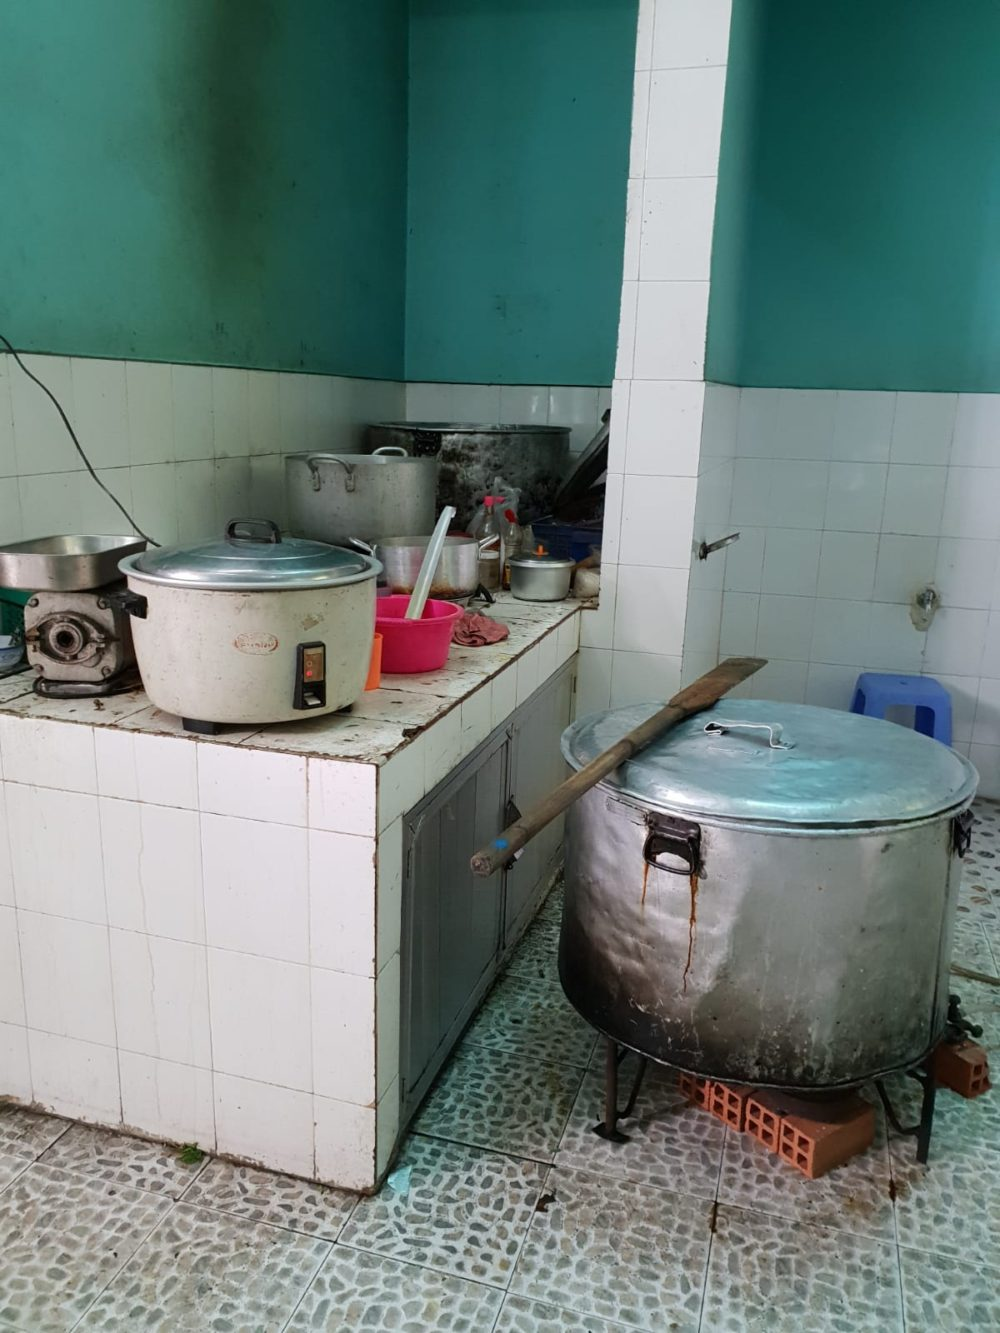 The kitchen of the mosque